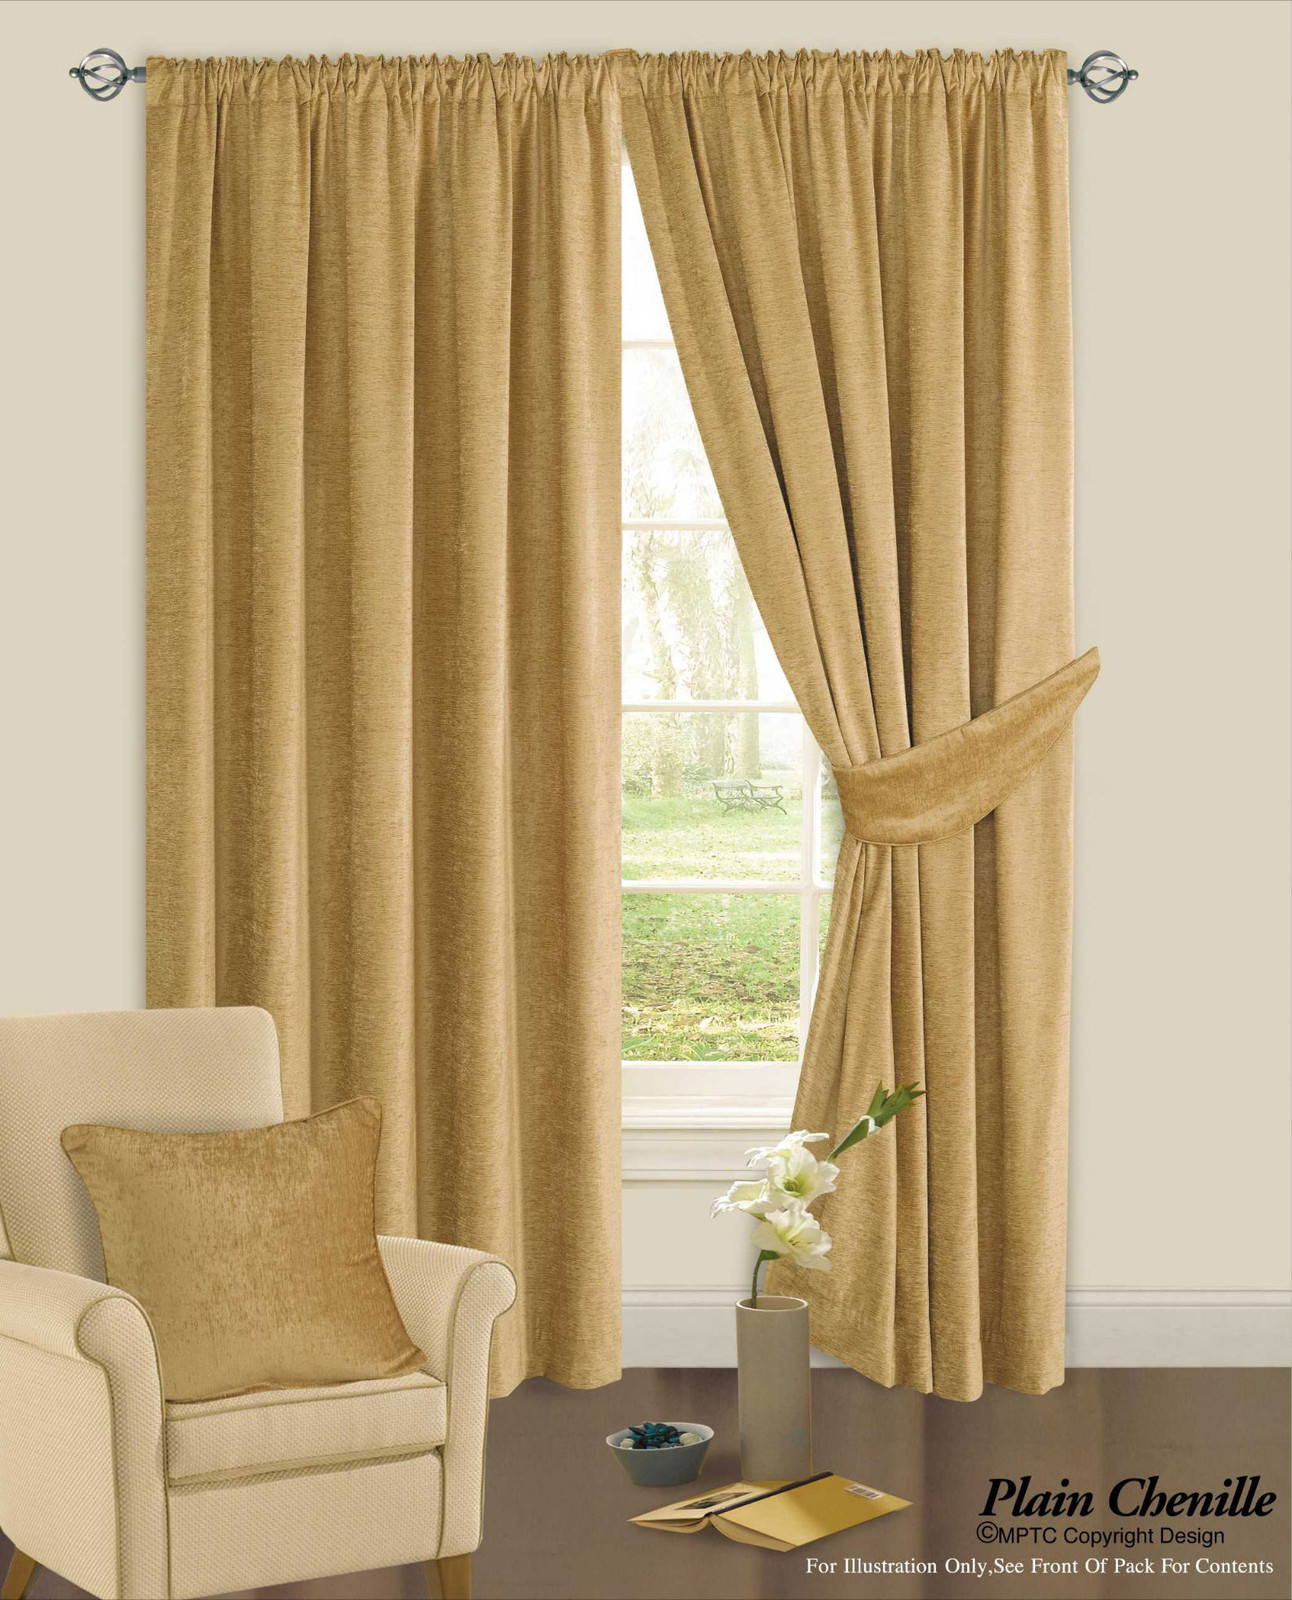 asp ready blackout fuschia curtains readymade bedroom plain ringtop curtain made livingroom pink eyelets p thermal colour